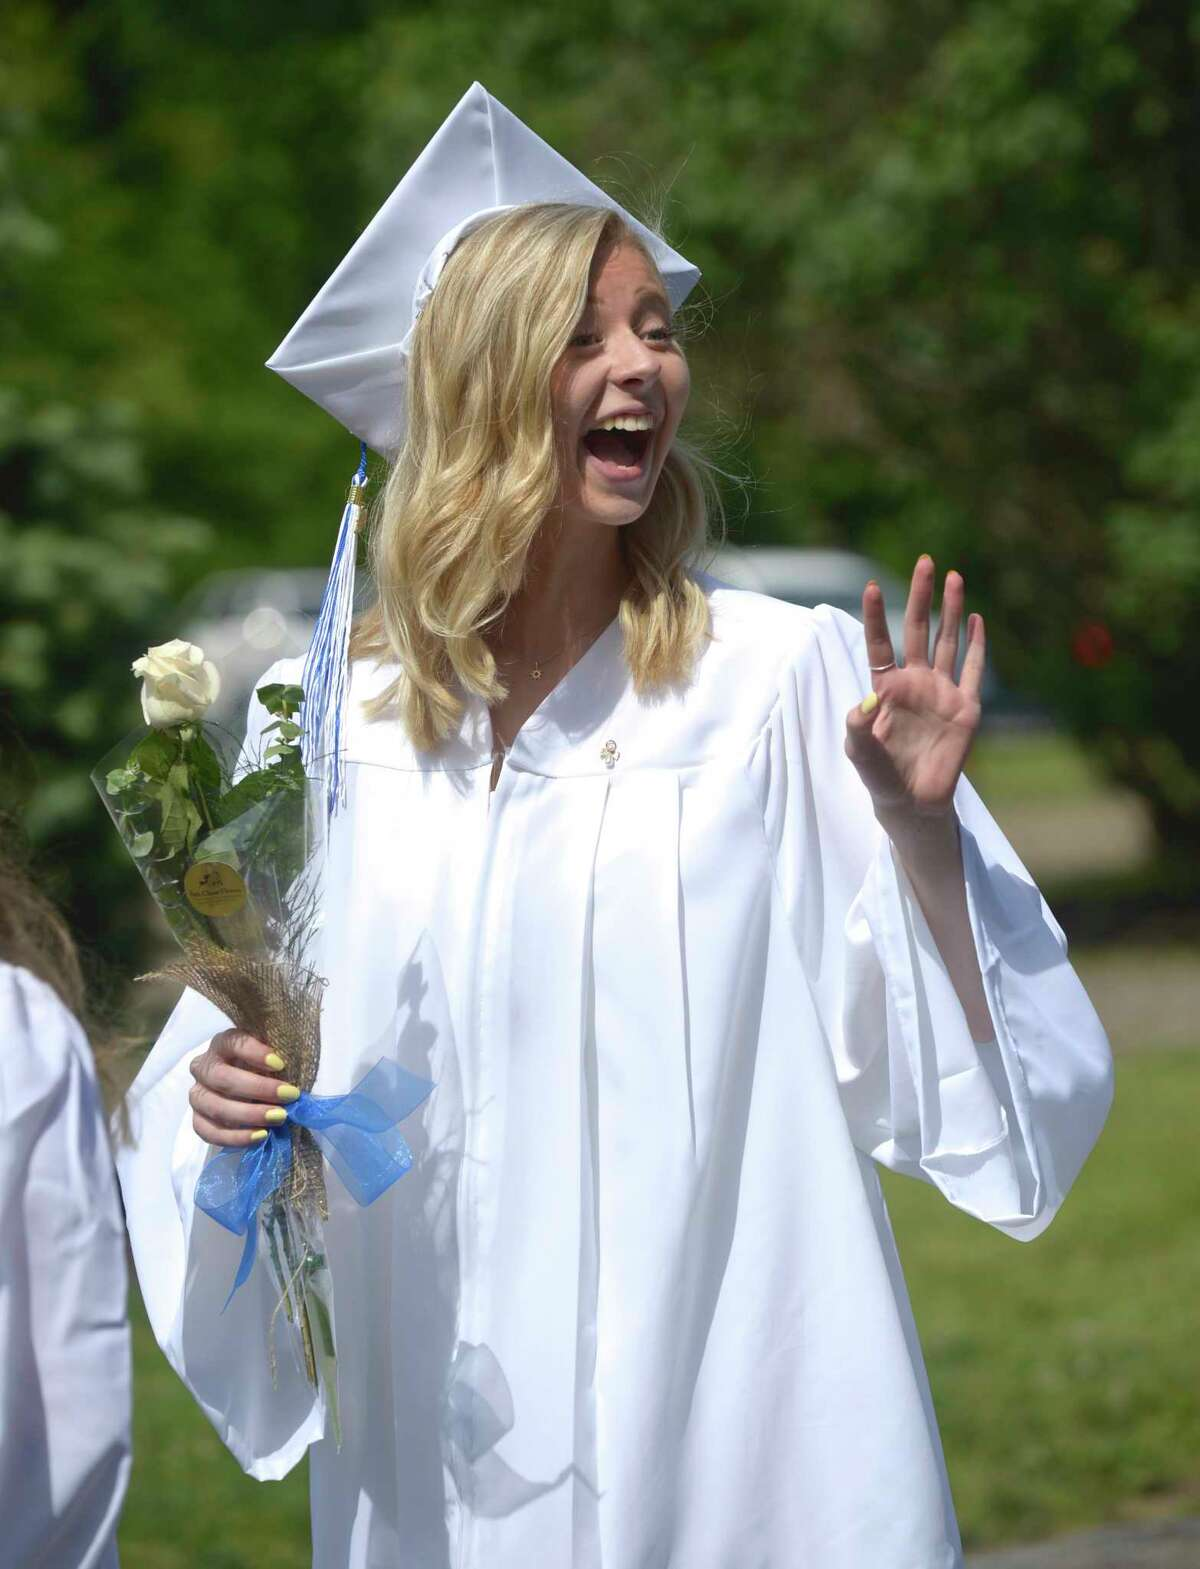 Lana Marie DelVecchio, of Bridgewater, waves during the procession for the Shepaug Valley High School Class of 2019 Commencement, Saturday morning, June 15, 2019, on the Bryan Memorial Town Hall lawn, Washington, Conn.